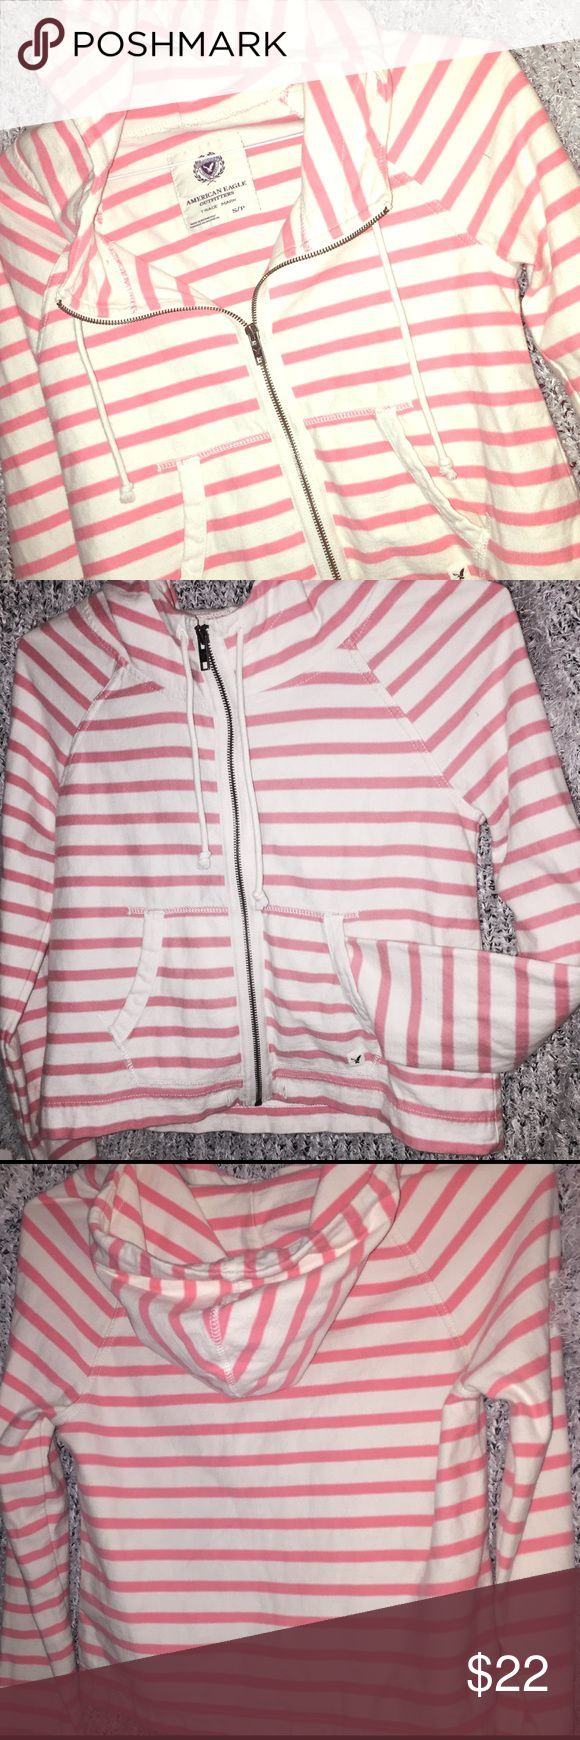 American Eagle Outfitters hoodie Size small petite American Outfitters white and pink hoodie sweater. American Eagle Outfitters Sweaters